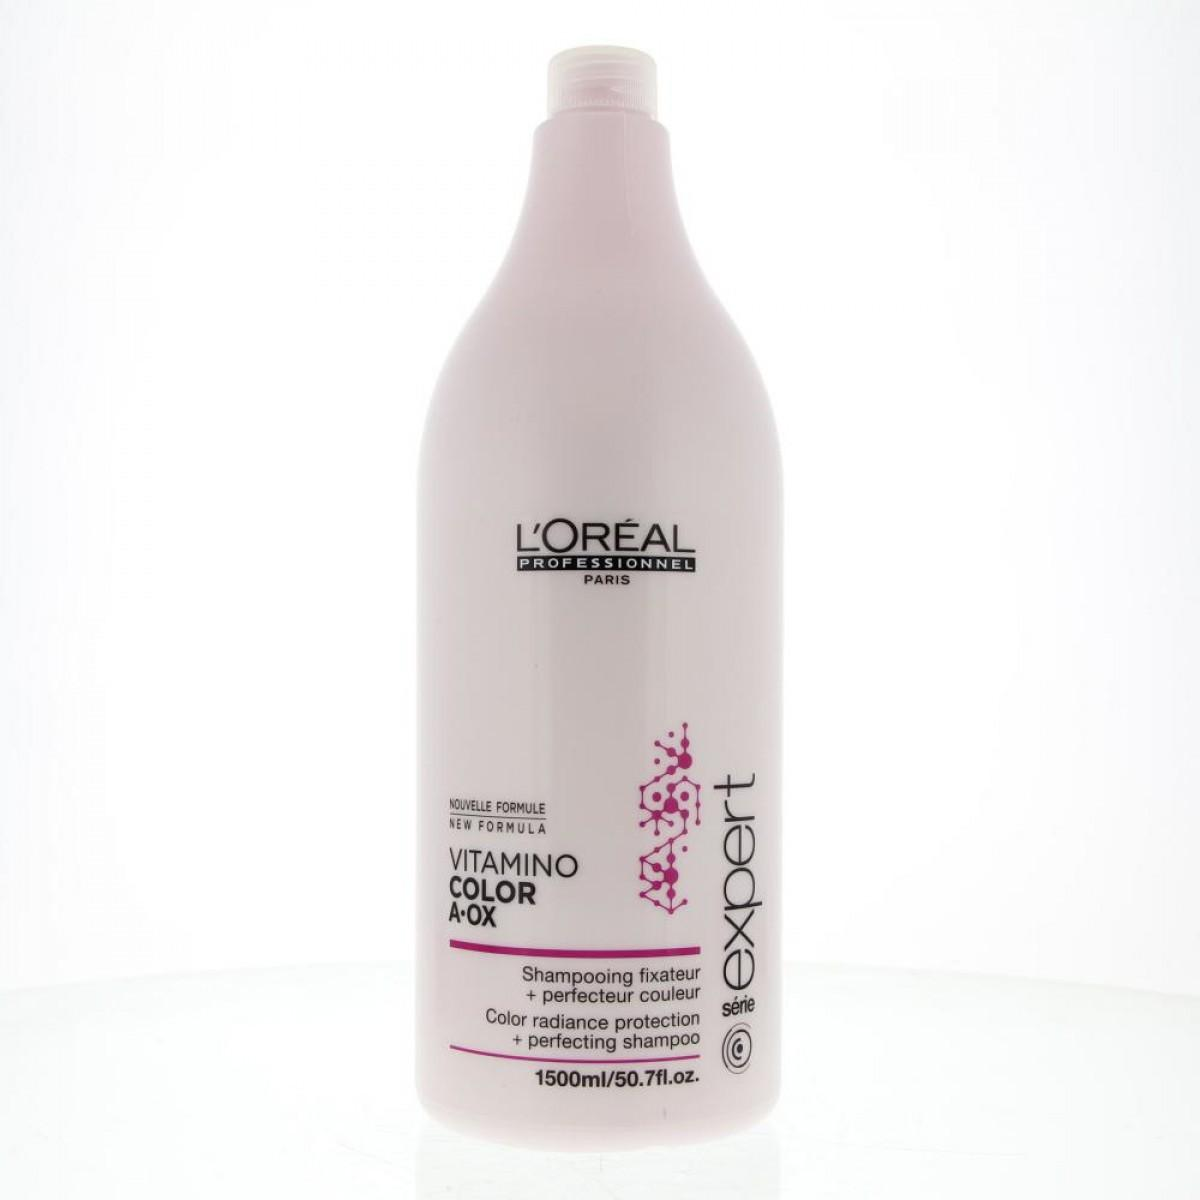 L´oreal L Oreal Expert Vitamino Color Aox Shampooing Fixateur Perfecteur Couleur 1500 ml